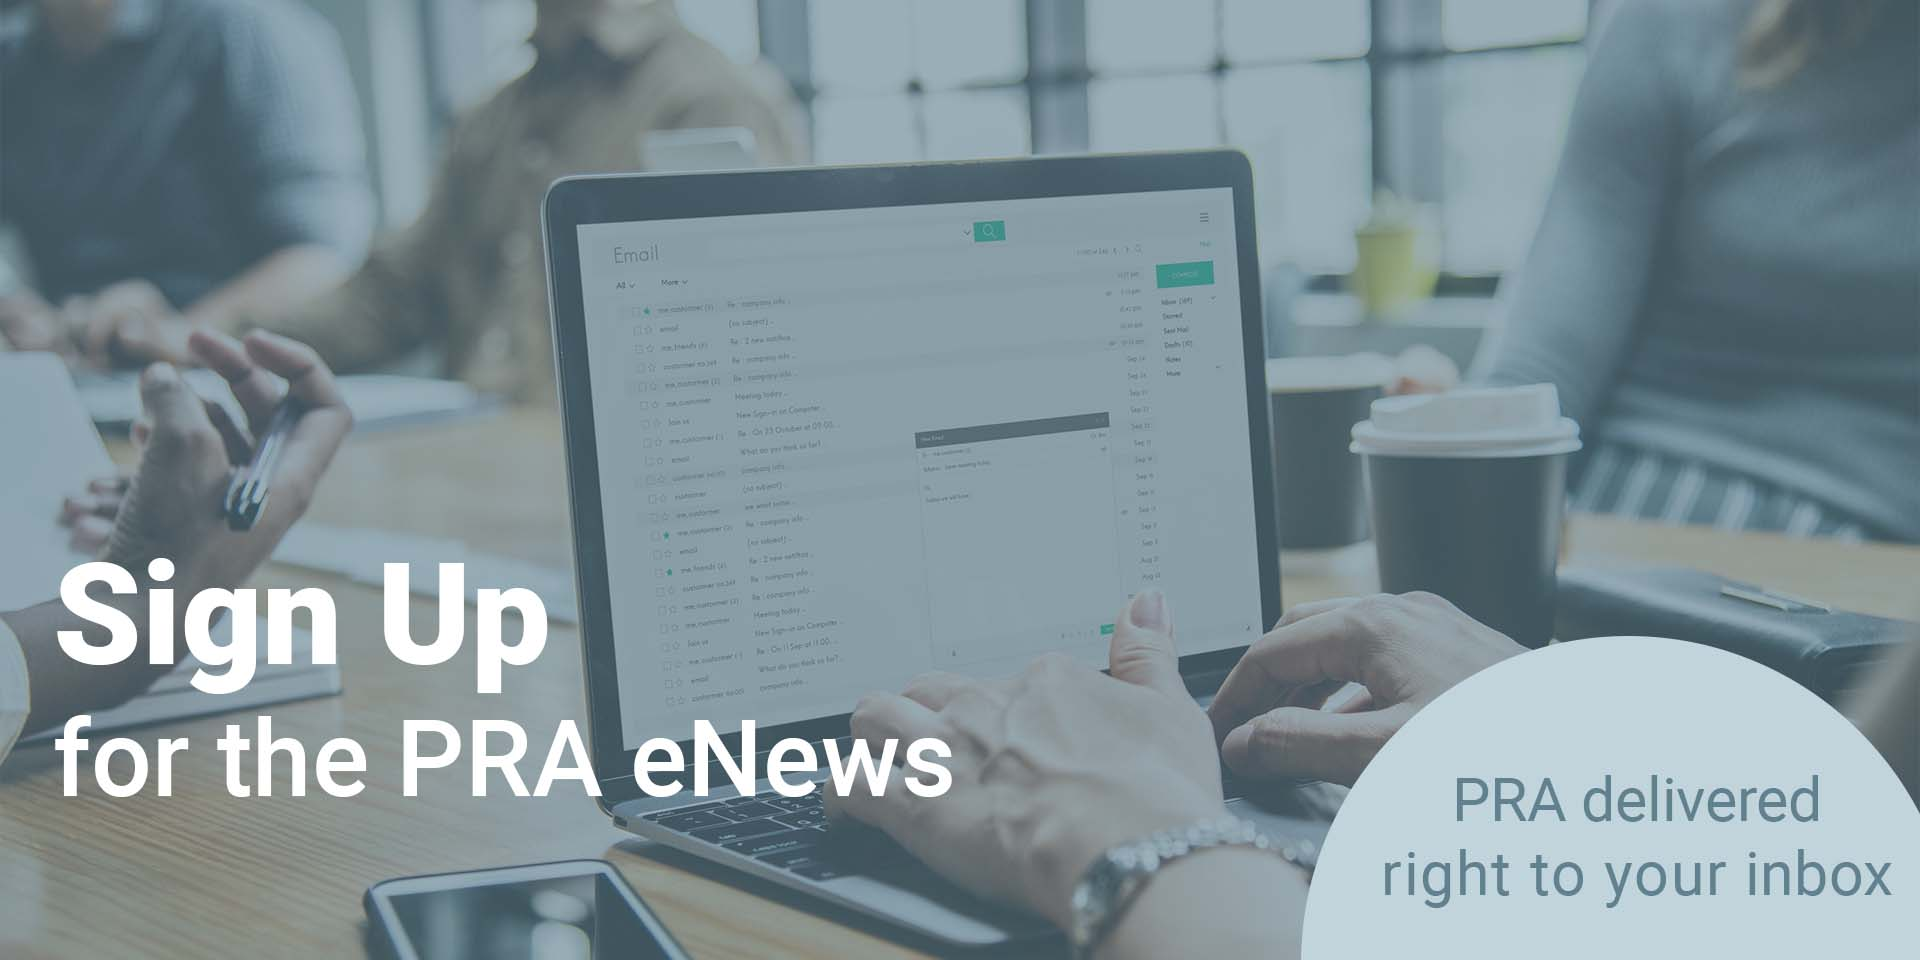 Sign Up for the PRA eNews